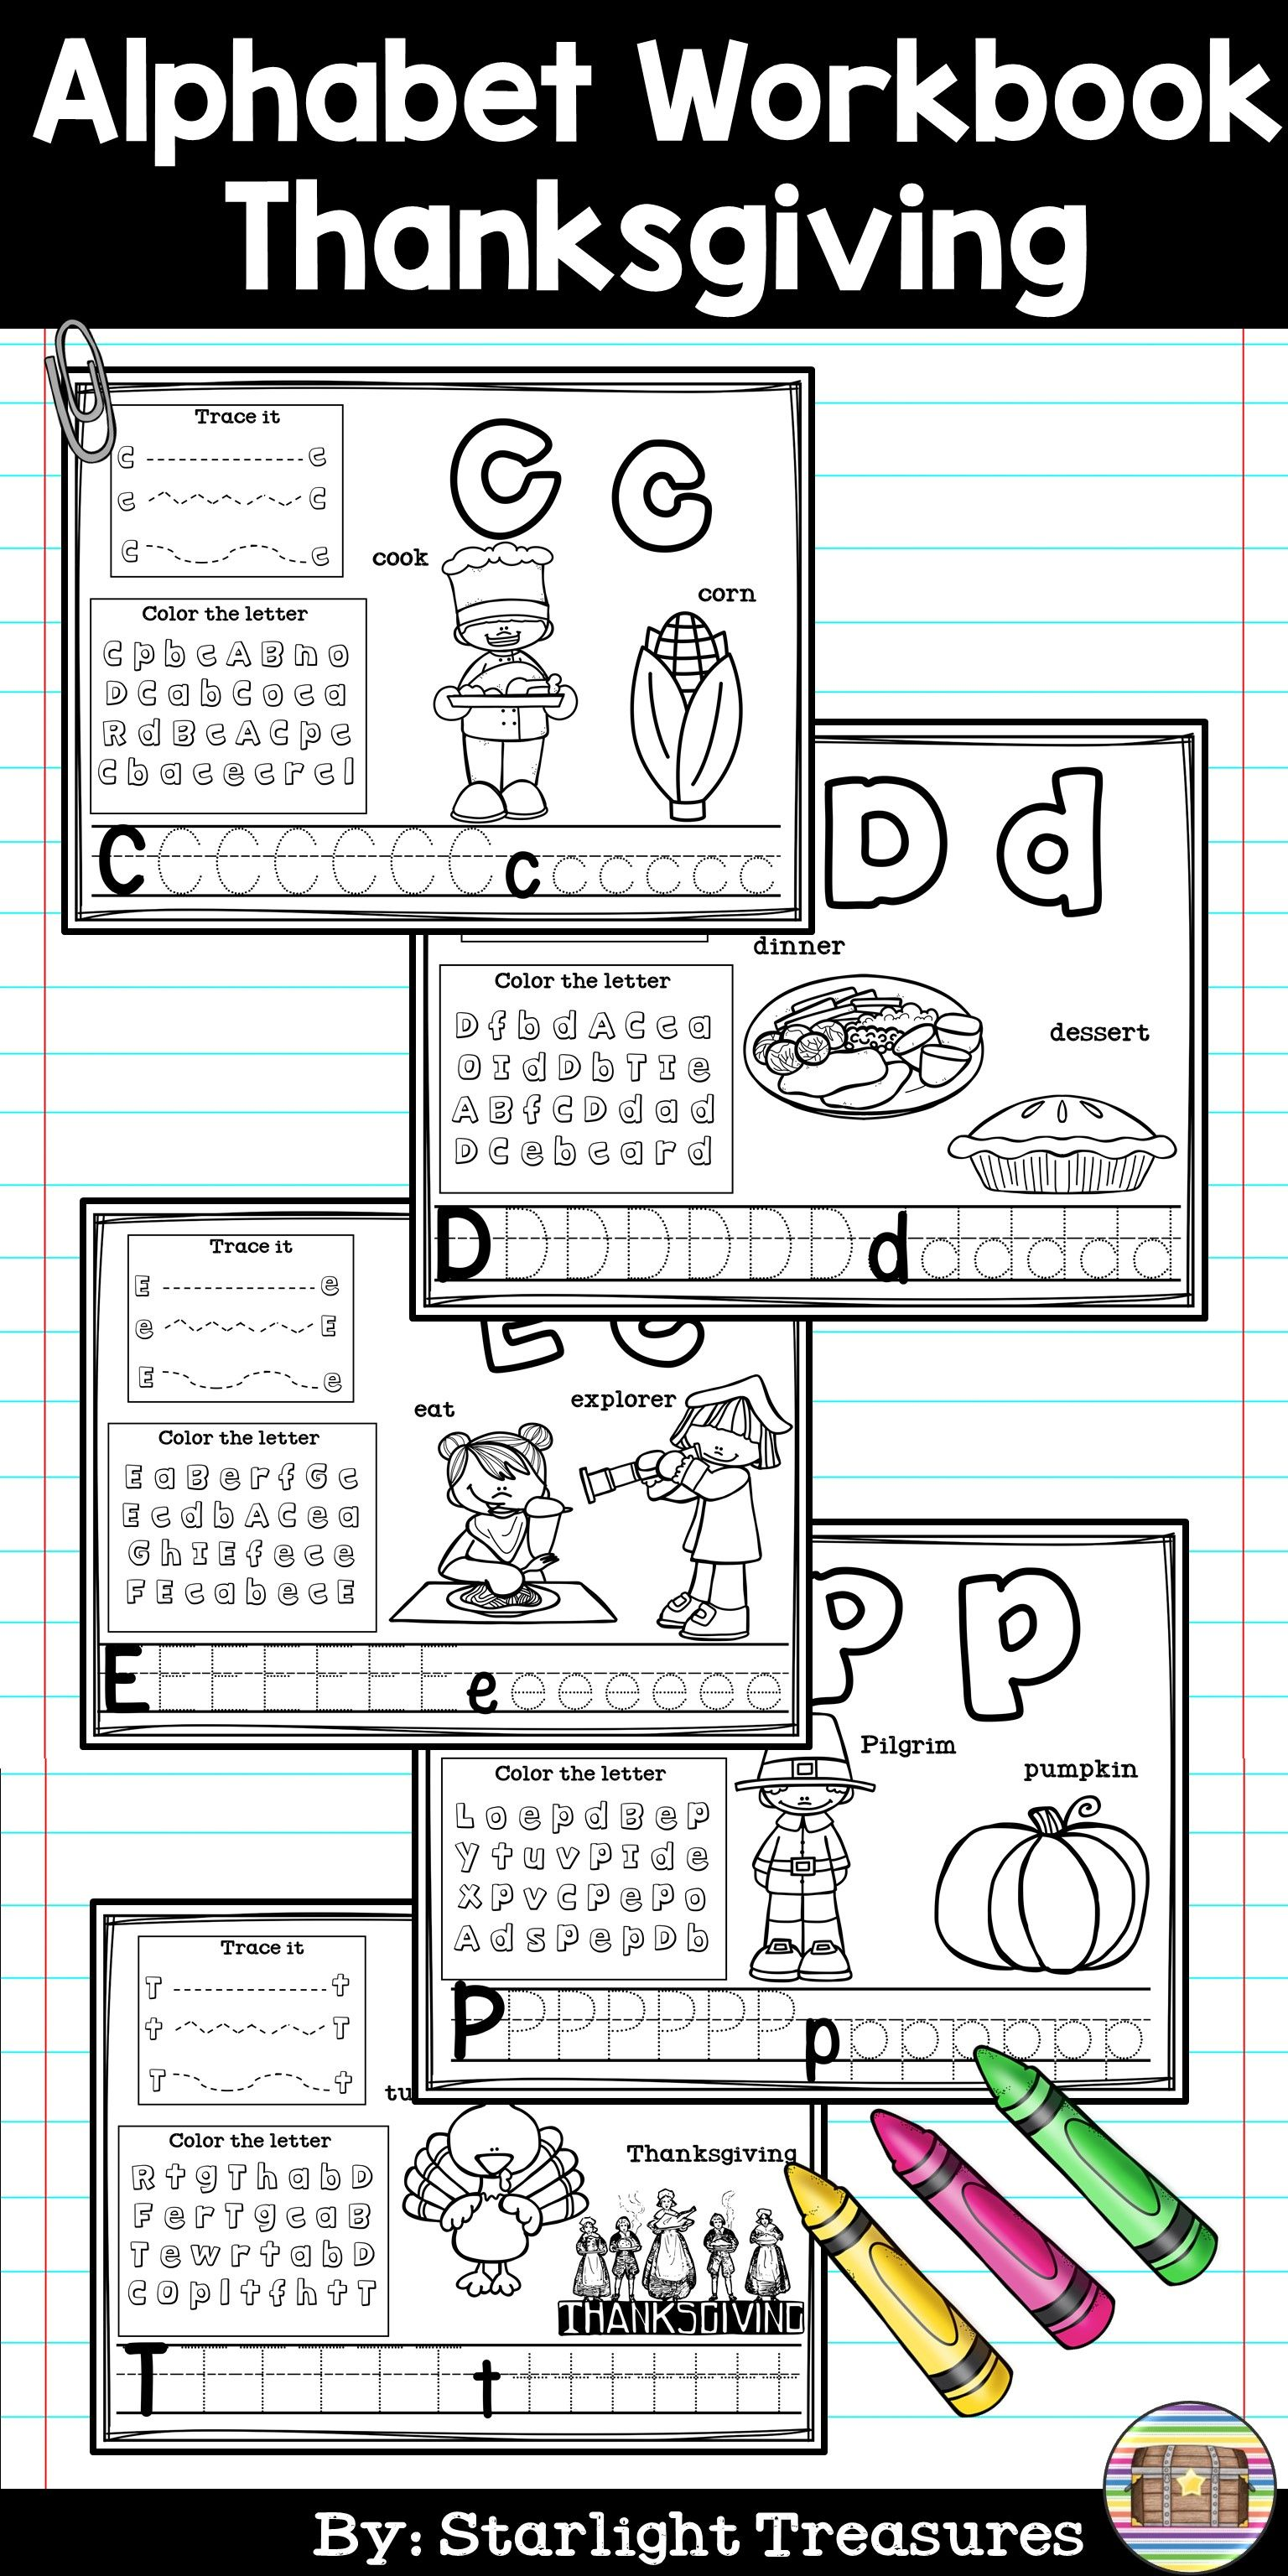 Alphabet Workbook Worksheets A Z Thanksgiving Theme